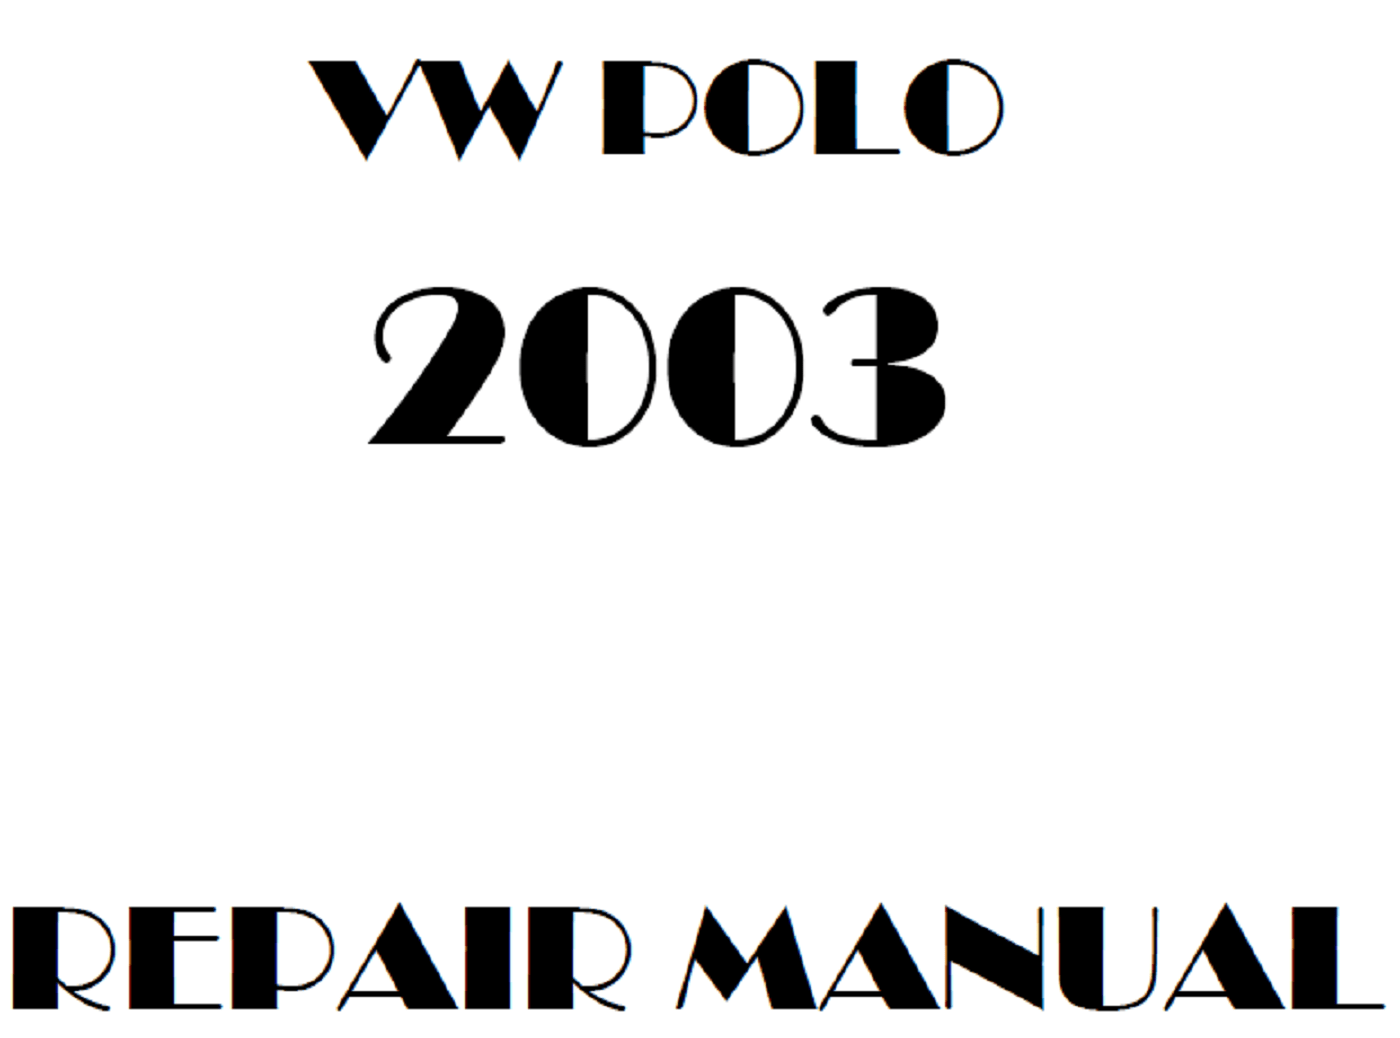 2003 Volkswagen Polo repair manual